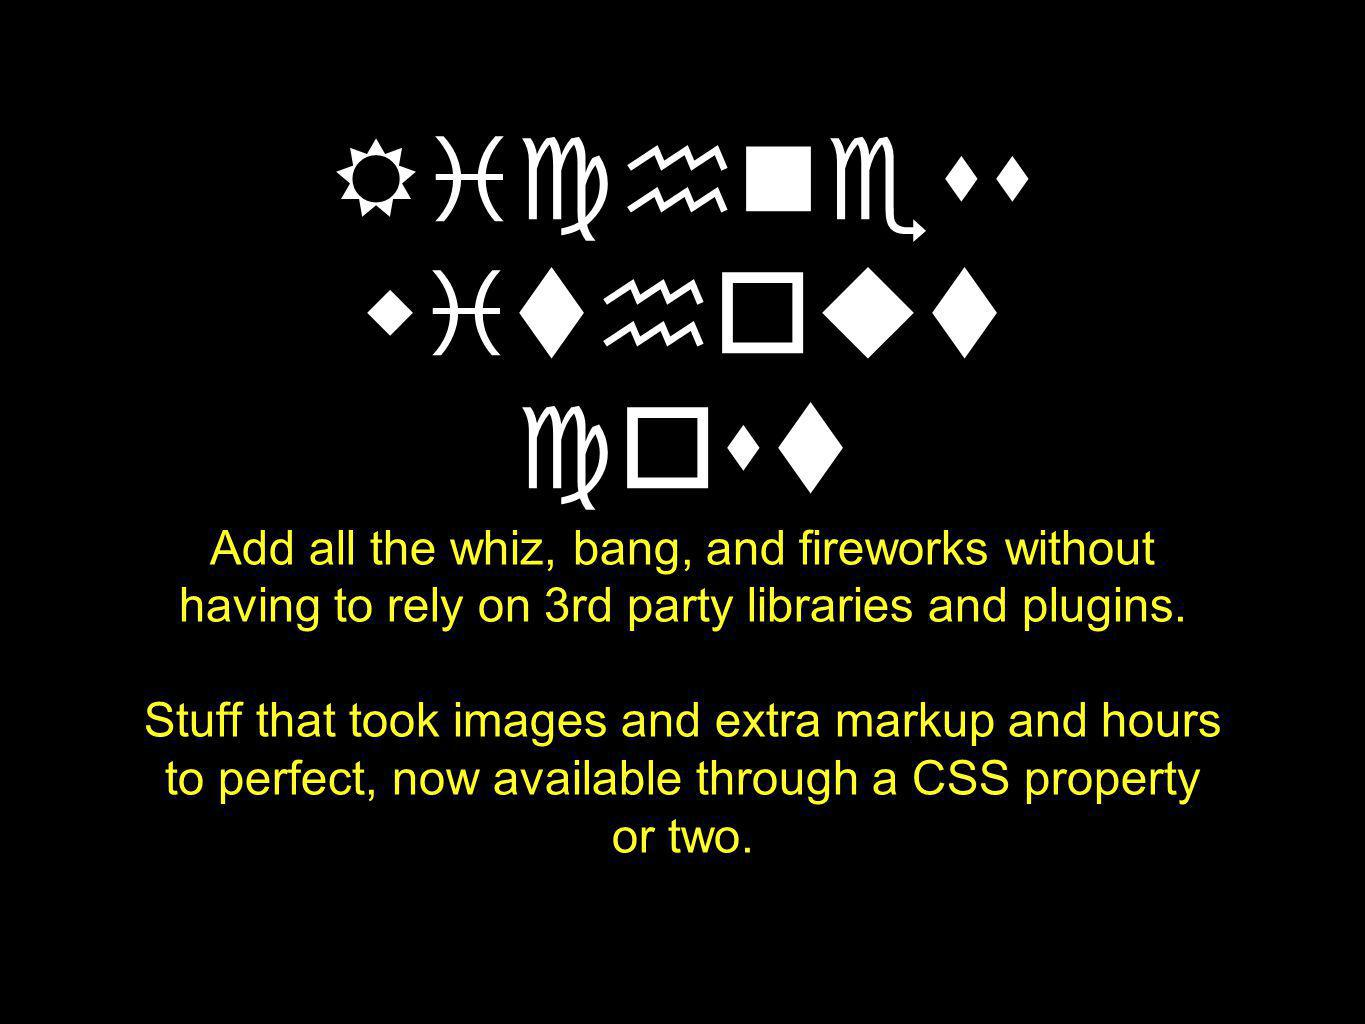 Richness without cost Add all the whiz, bang, and fireworks without having to rely on 3rd party libraries and plugins.